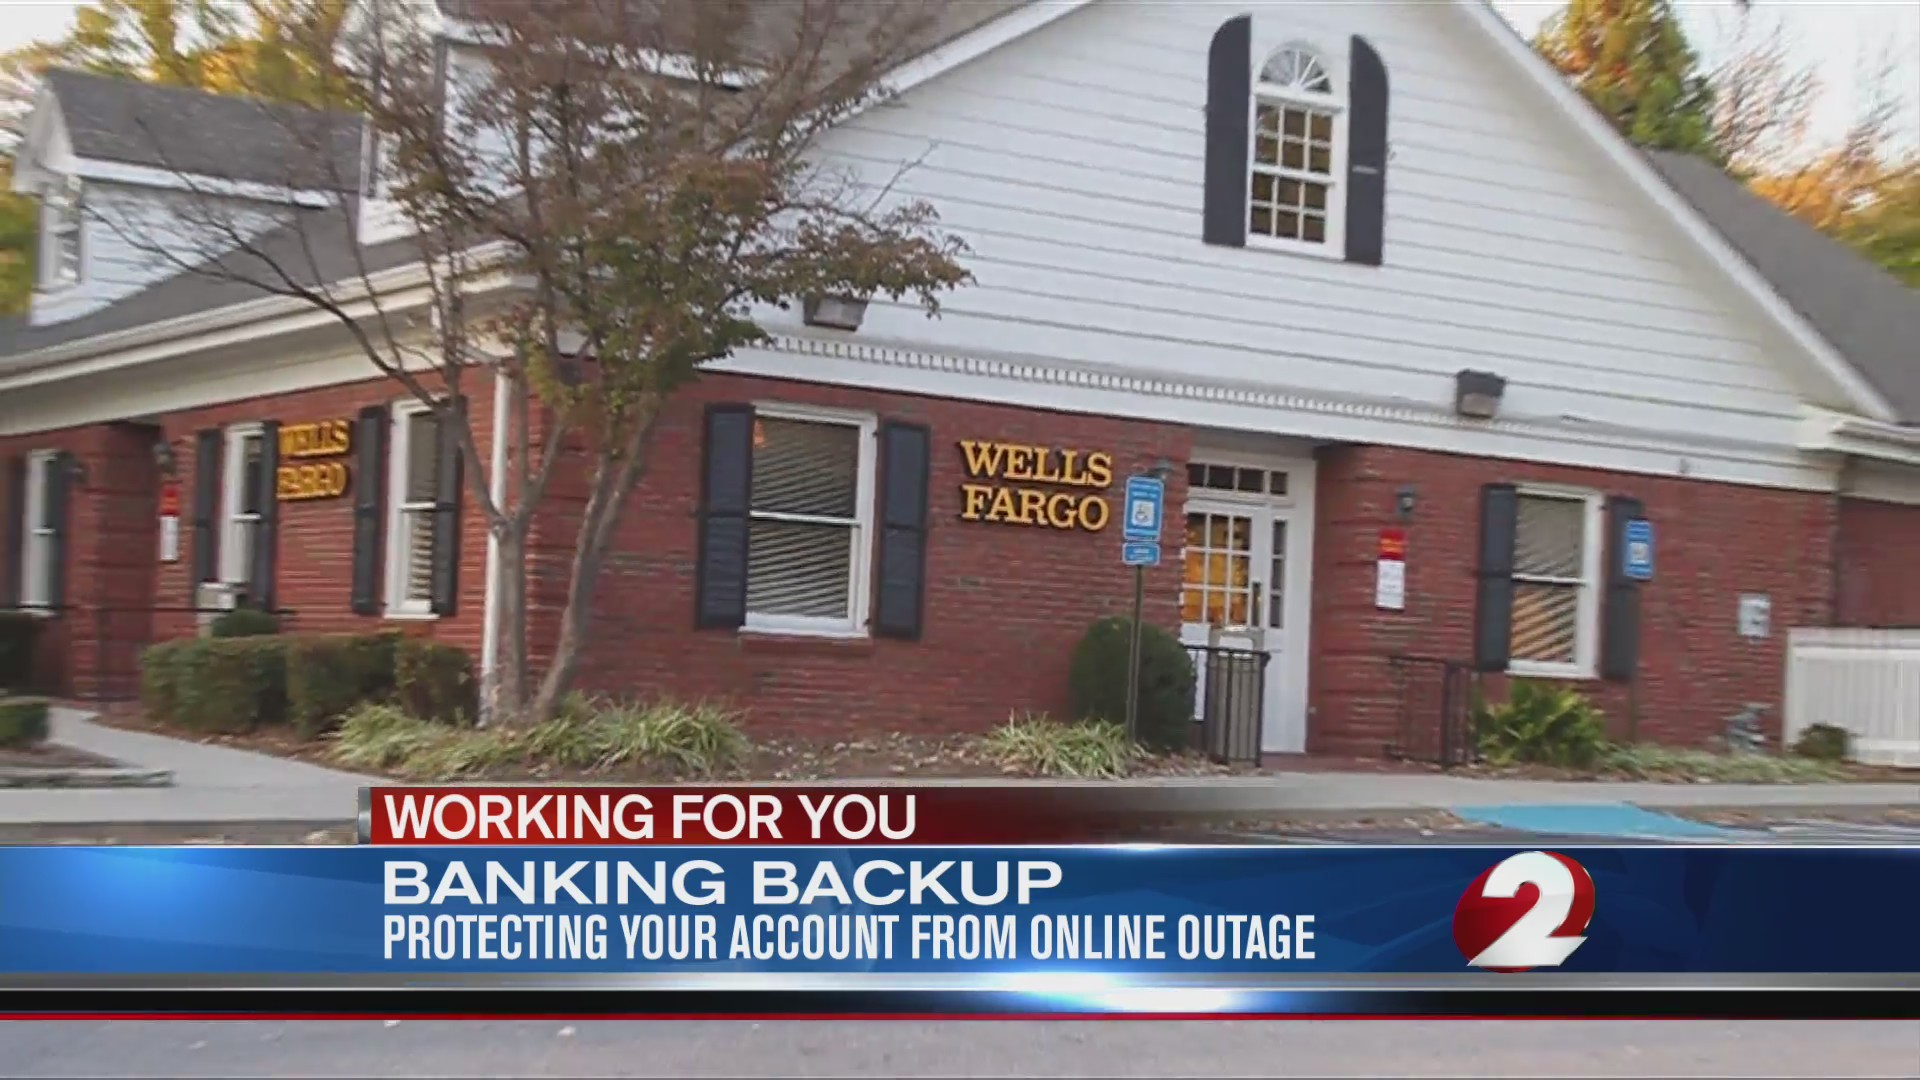 Protecting your account from online outage